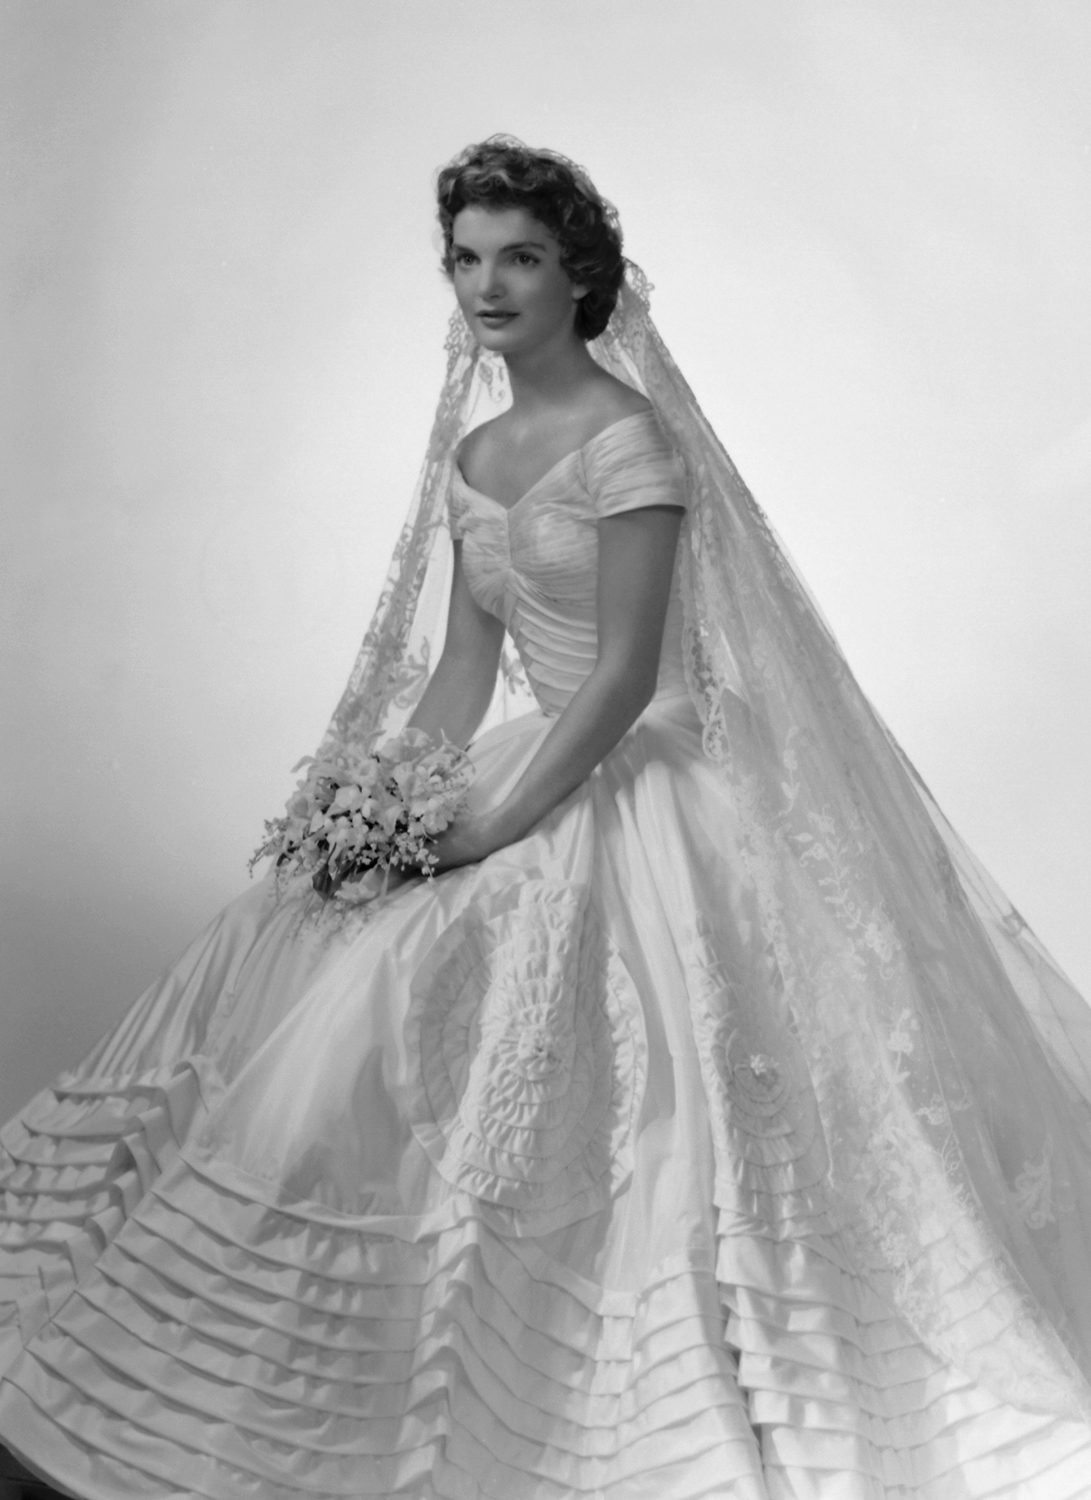 Vintage Clothing Love: Vintage Wedding Dress Time